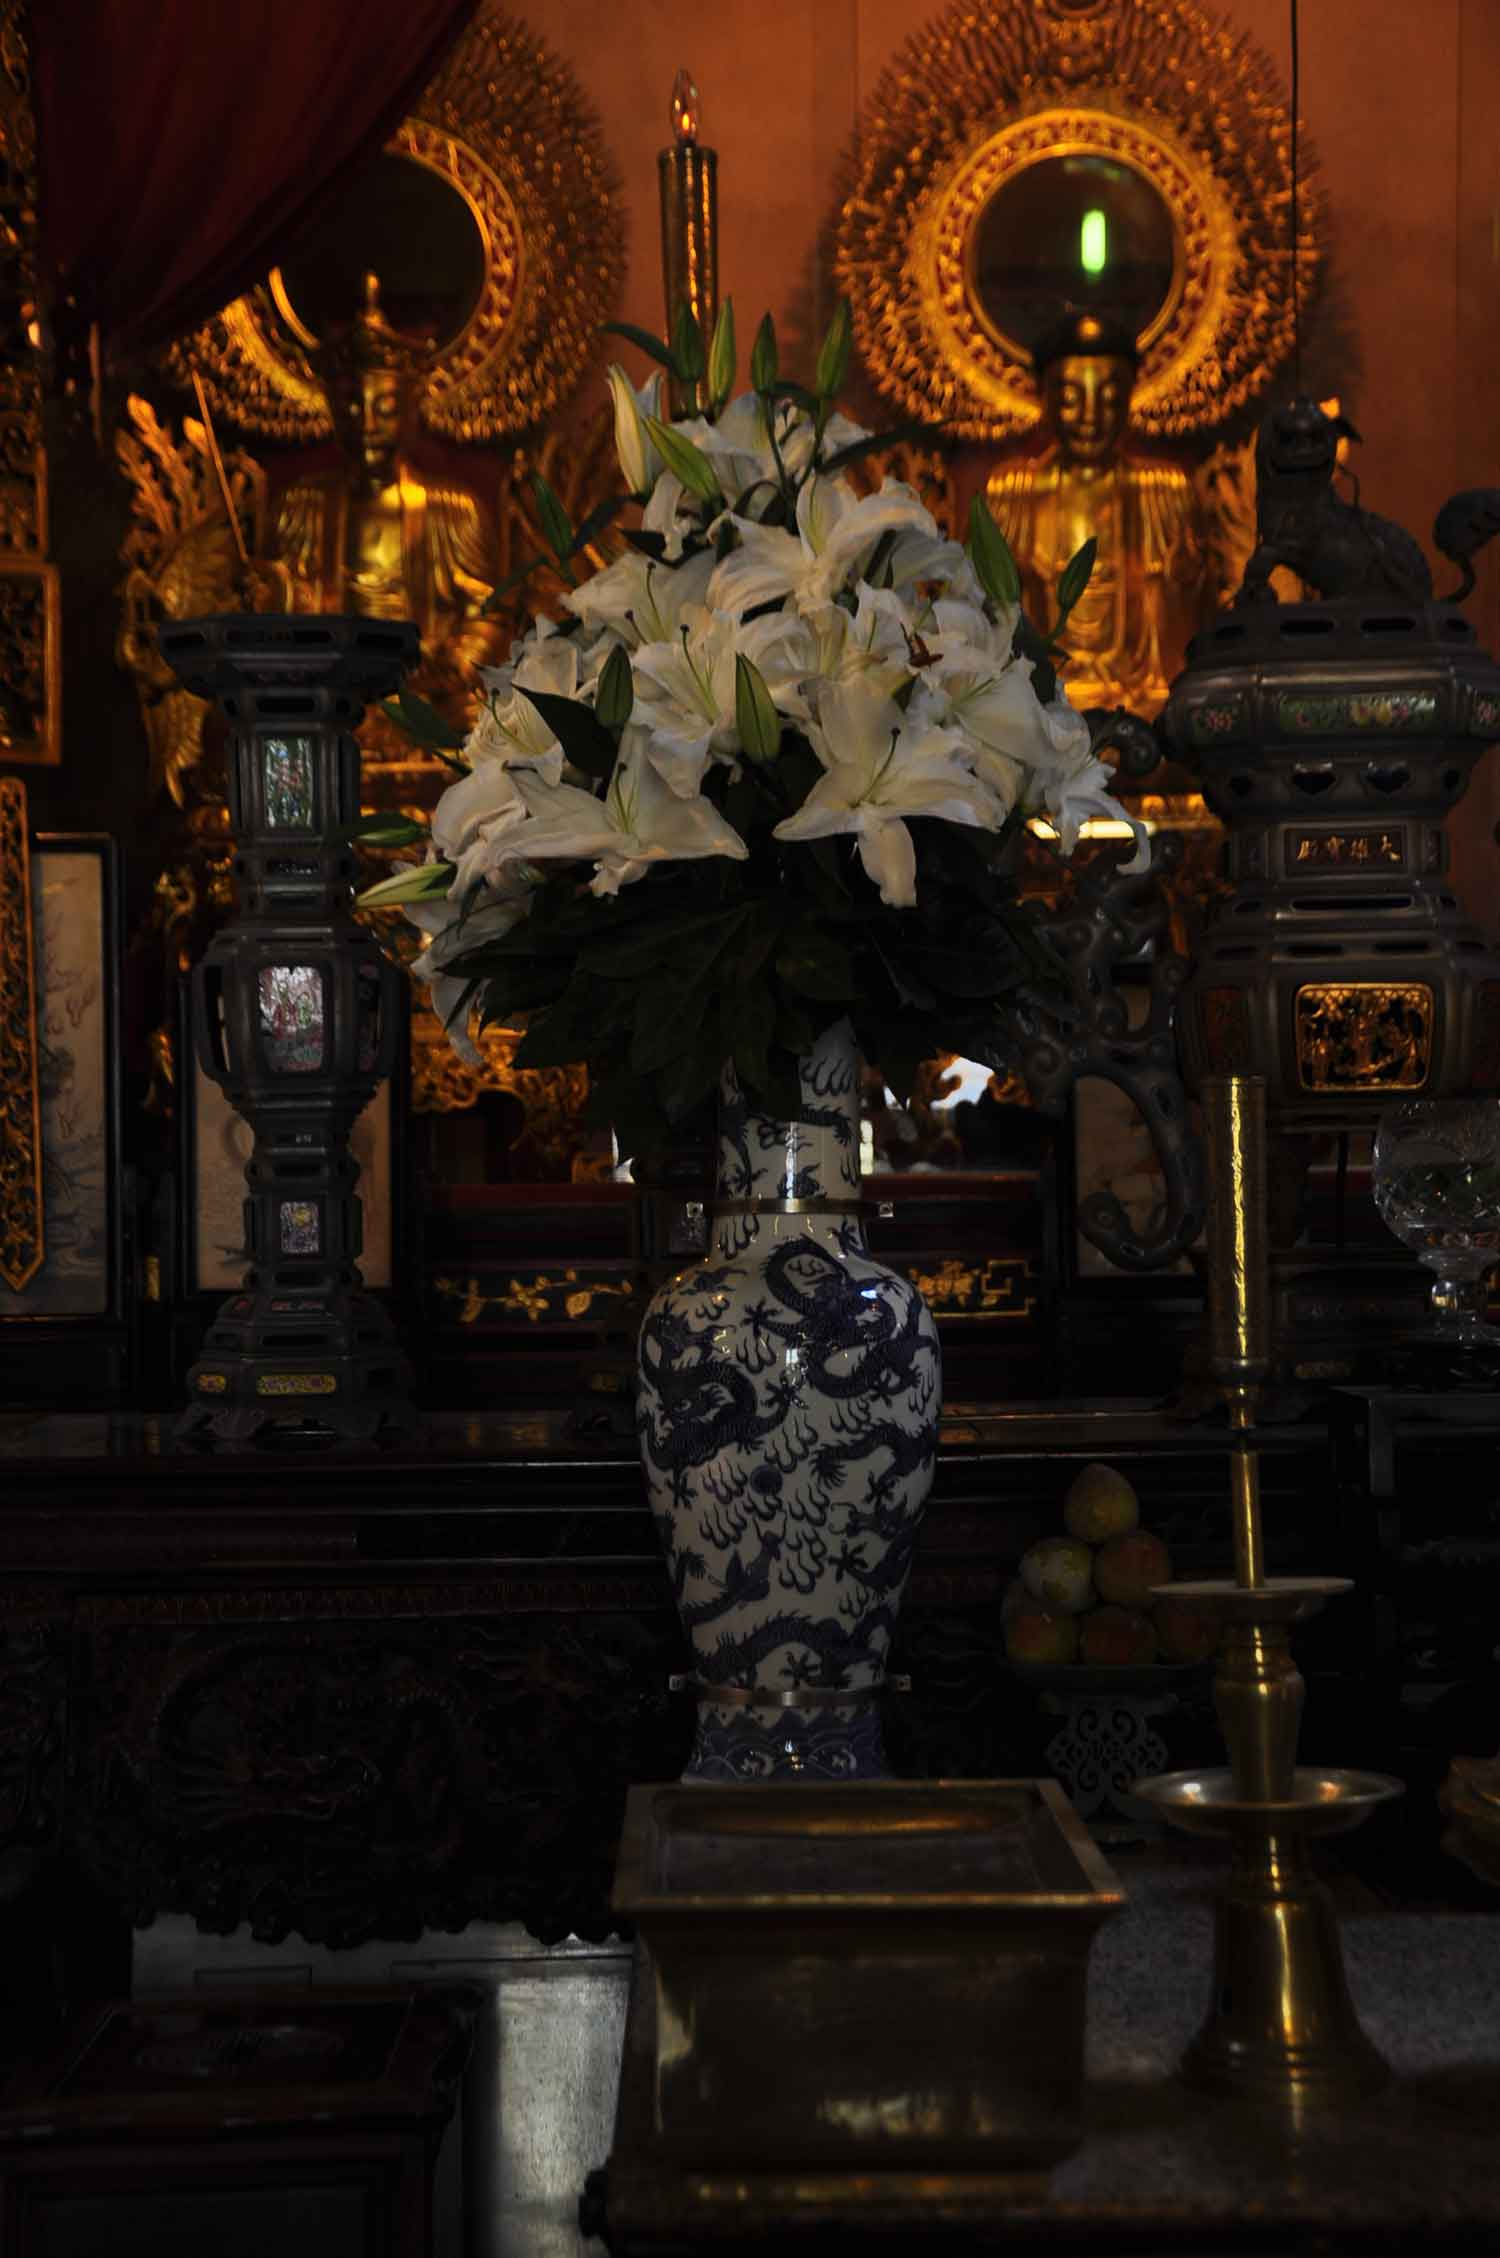 Temple of the King of Medicine flower vase and altar